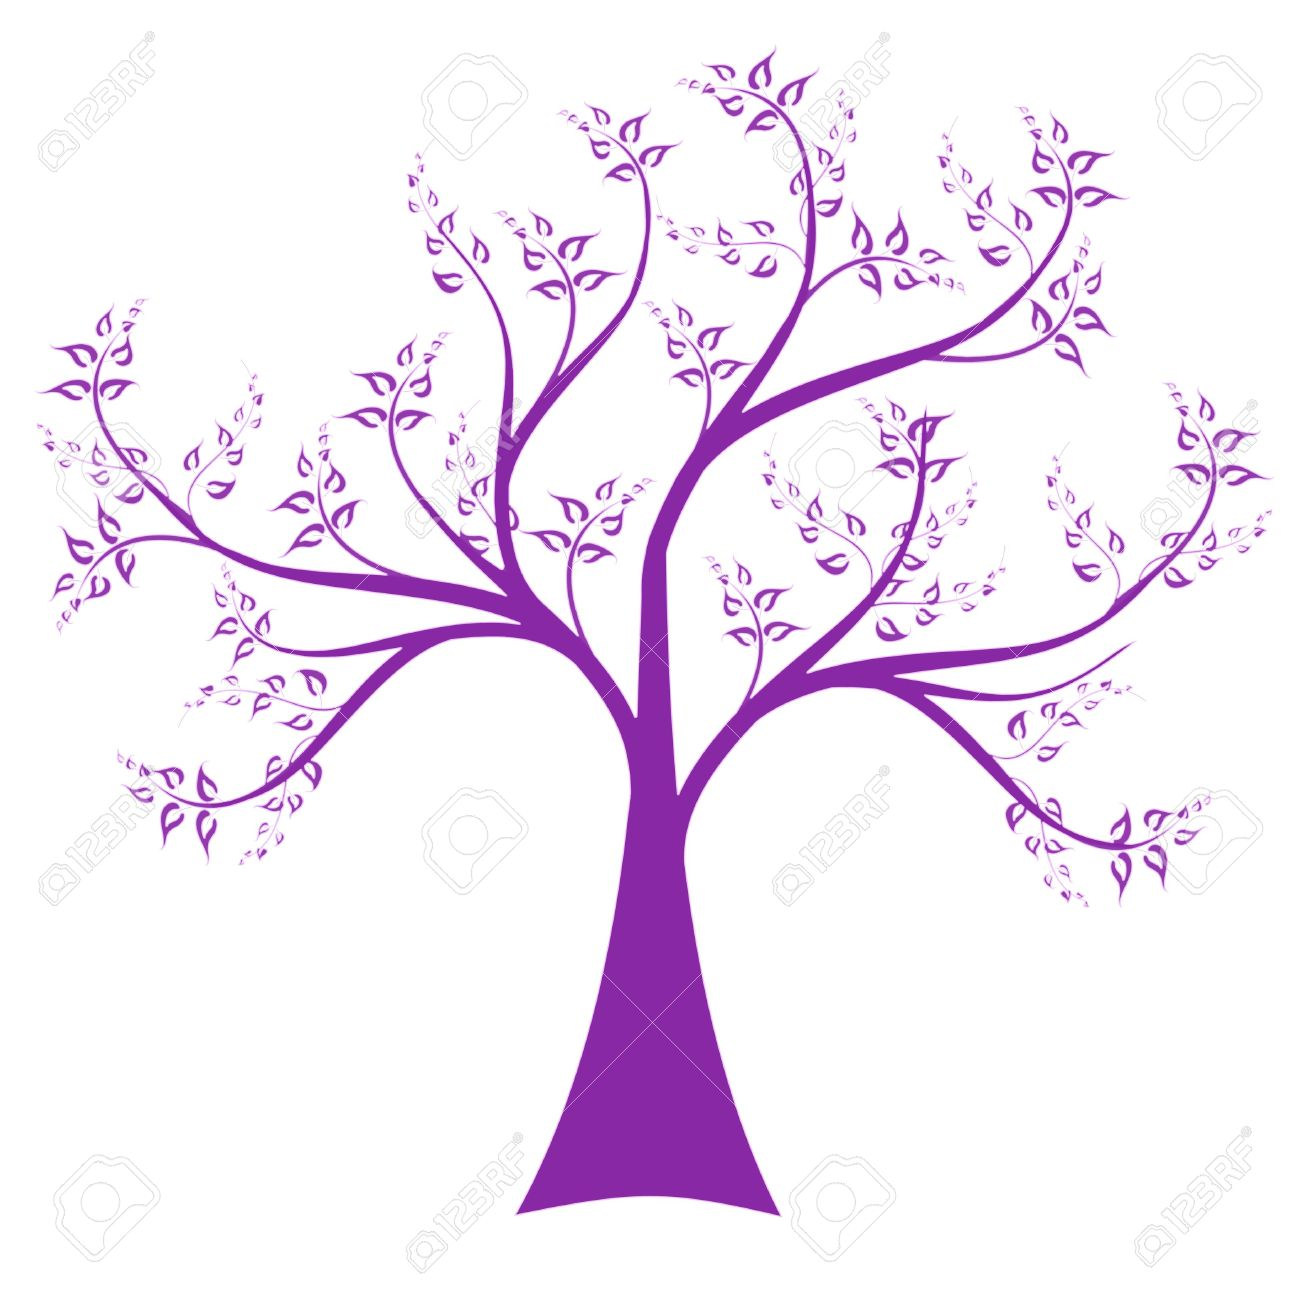 Art Tree Isolated On White Background Royalty Free Cliparts.